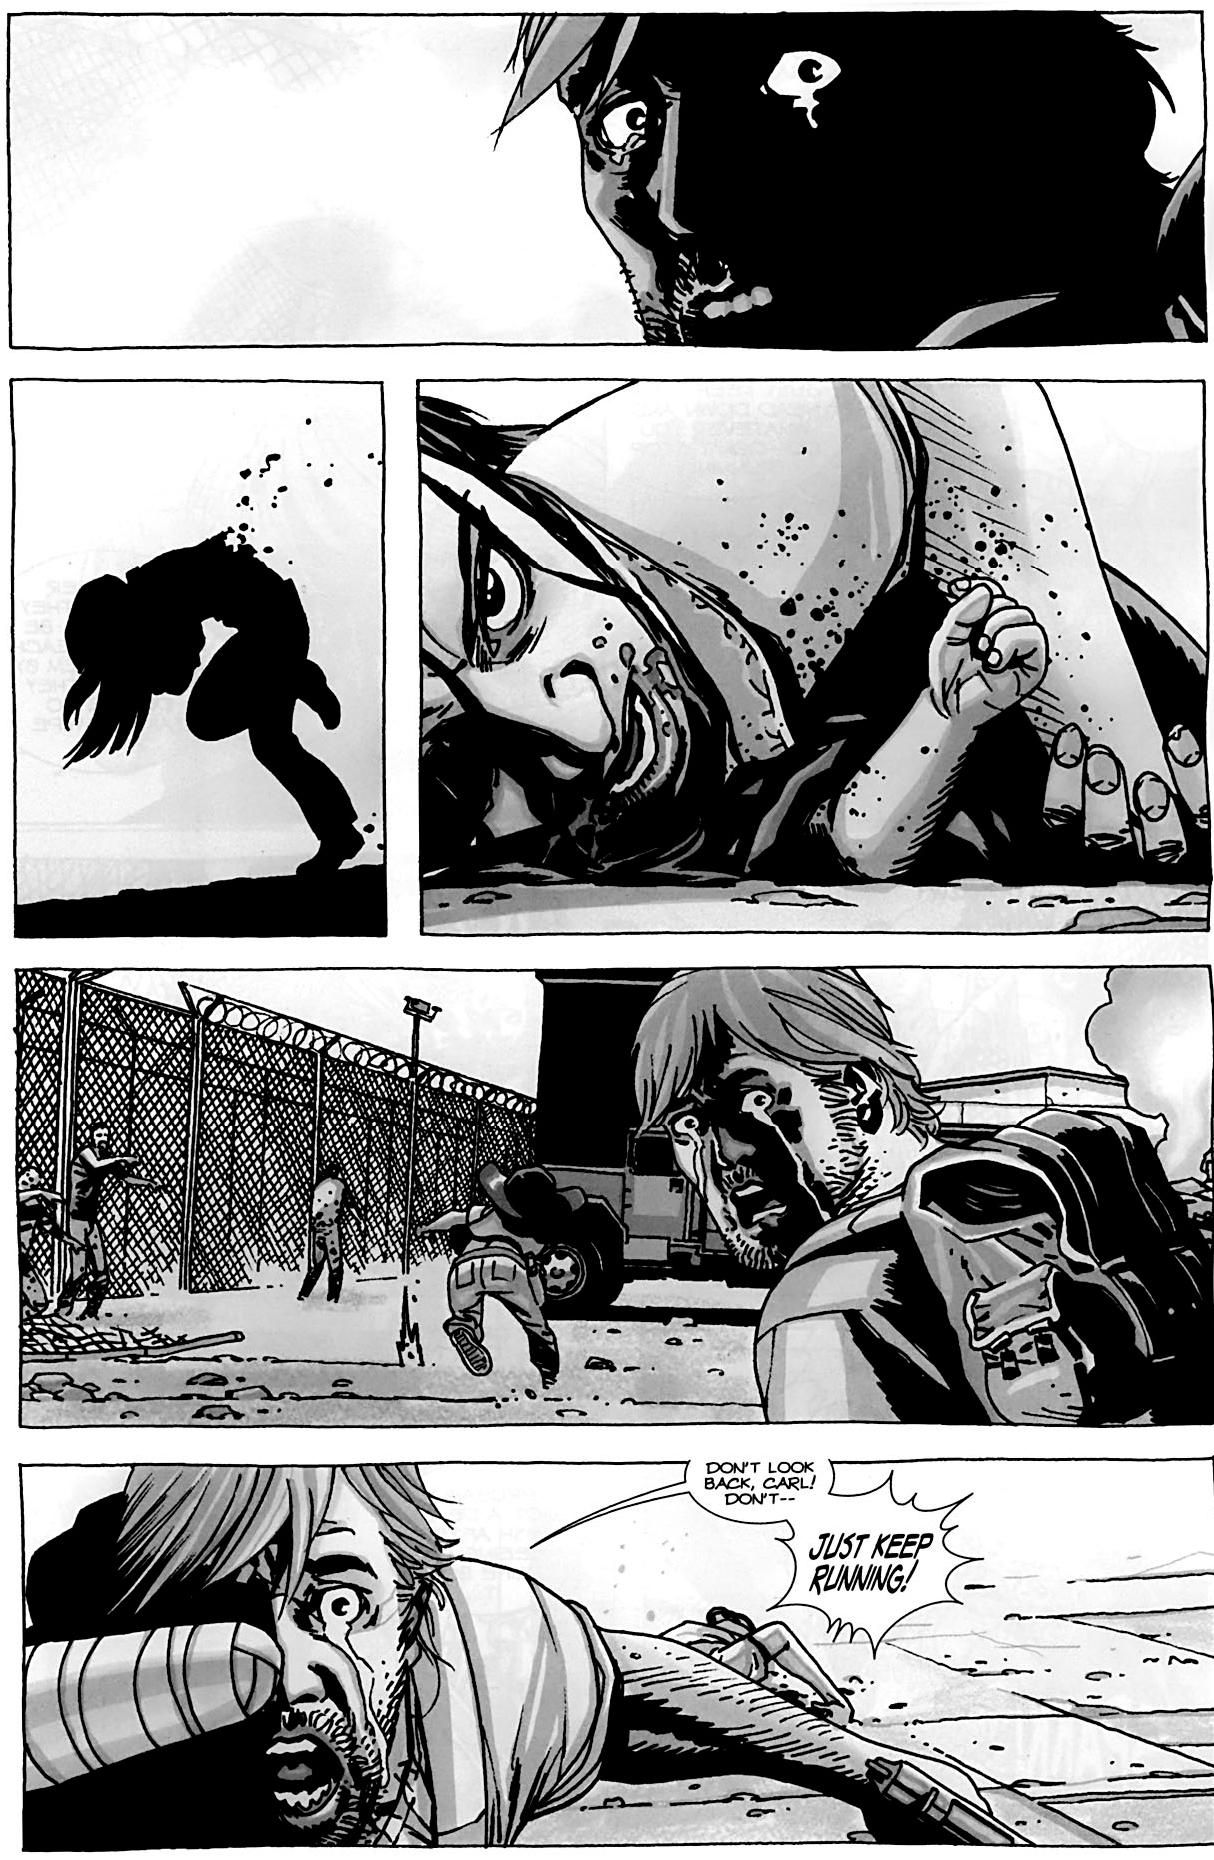 death of lori and judith grimes